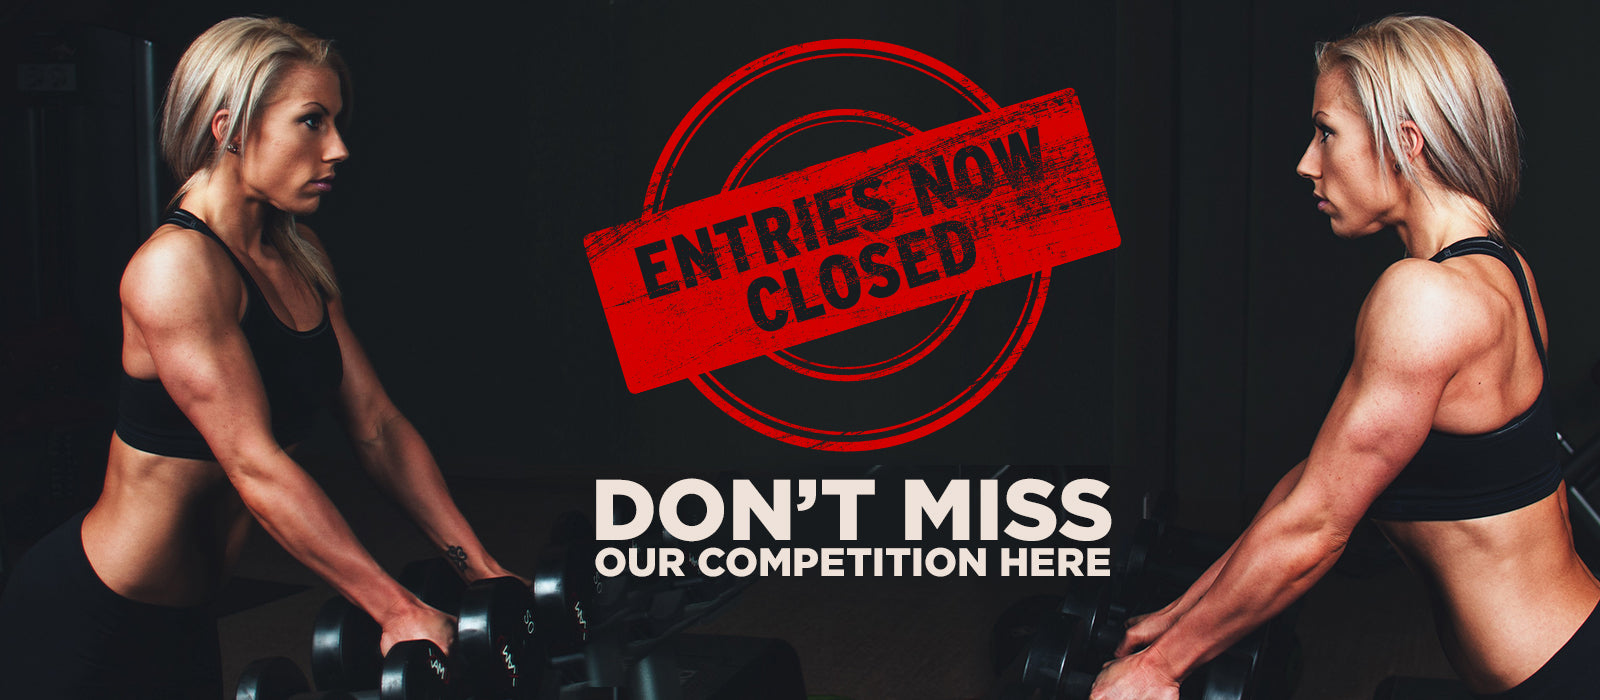 [ENTRIES NOW CLOSED] Don't Miss Our Competition Here